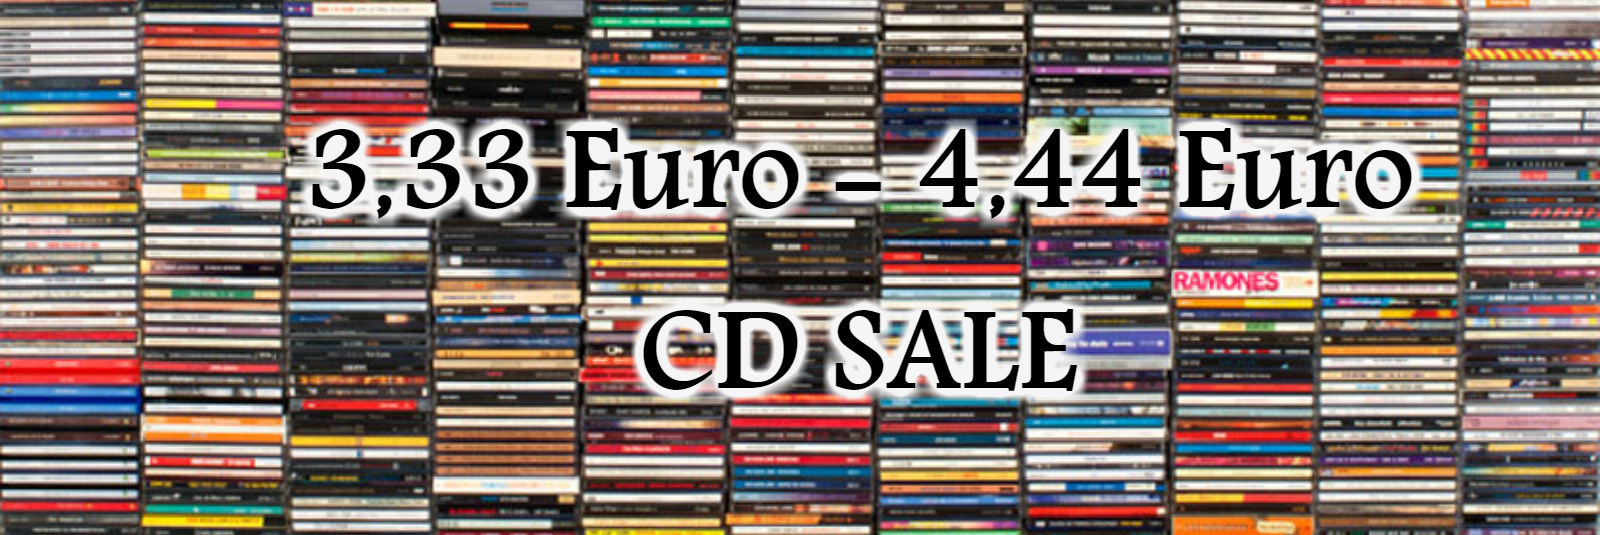 We have a permanent CD sale here! All CDs are new. Just for 3,33-4,44 Euro! Limited quantity.  Don't miss your chance!